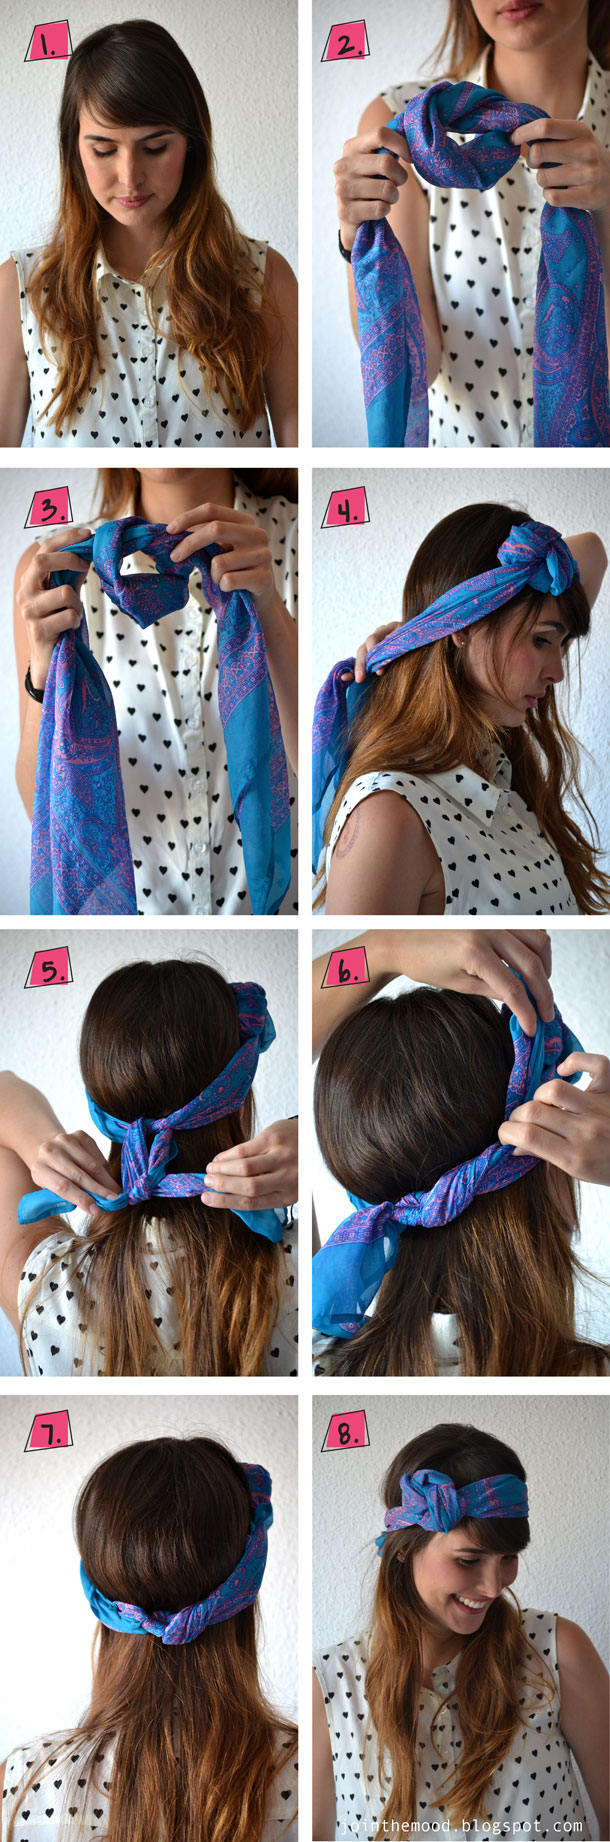 Hair with a blue headscarf